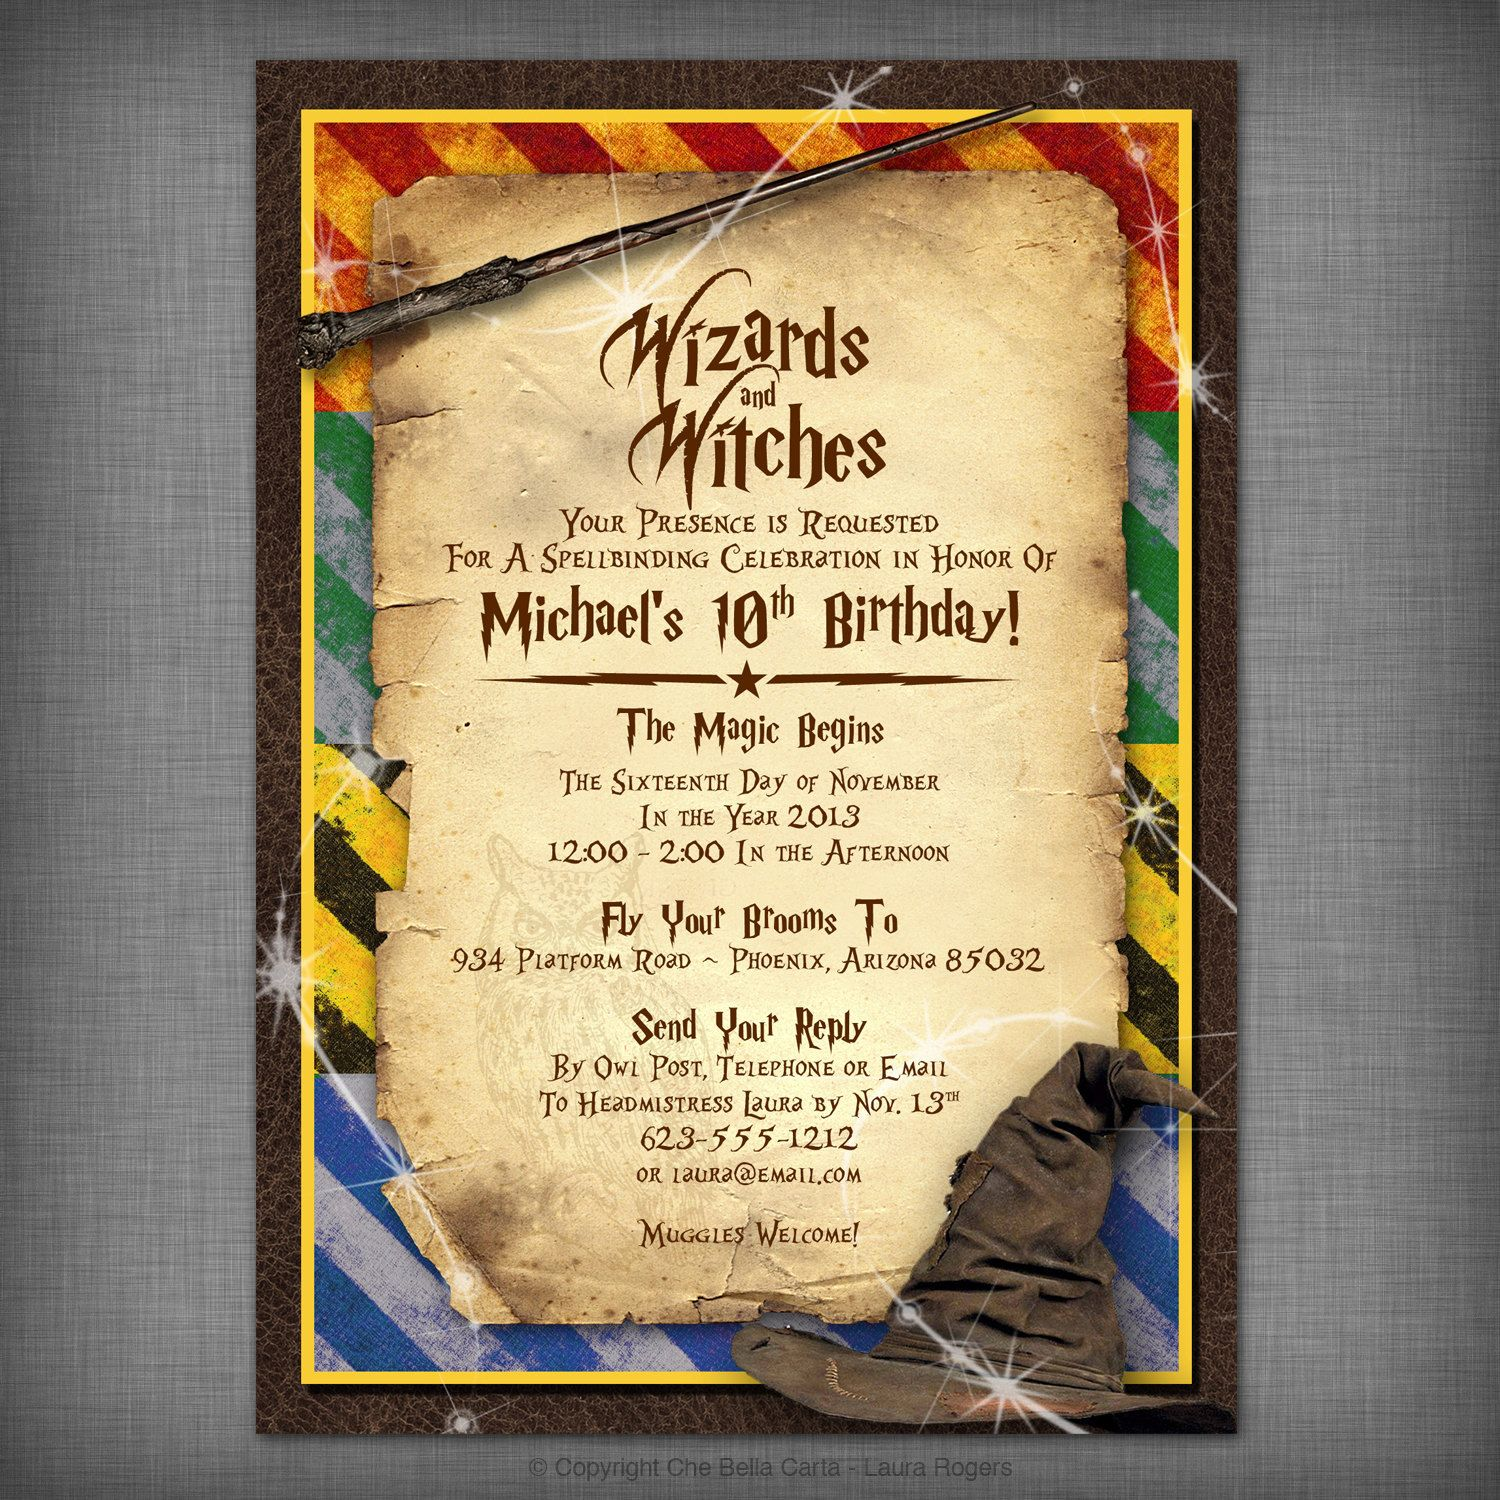 Witches Wizards Printable Invitation Etsy In 2021 Harry Potter Invitations Harry Potter Party Invitations Harry Potter Birthday Party